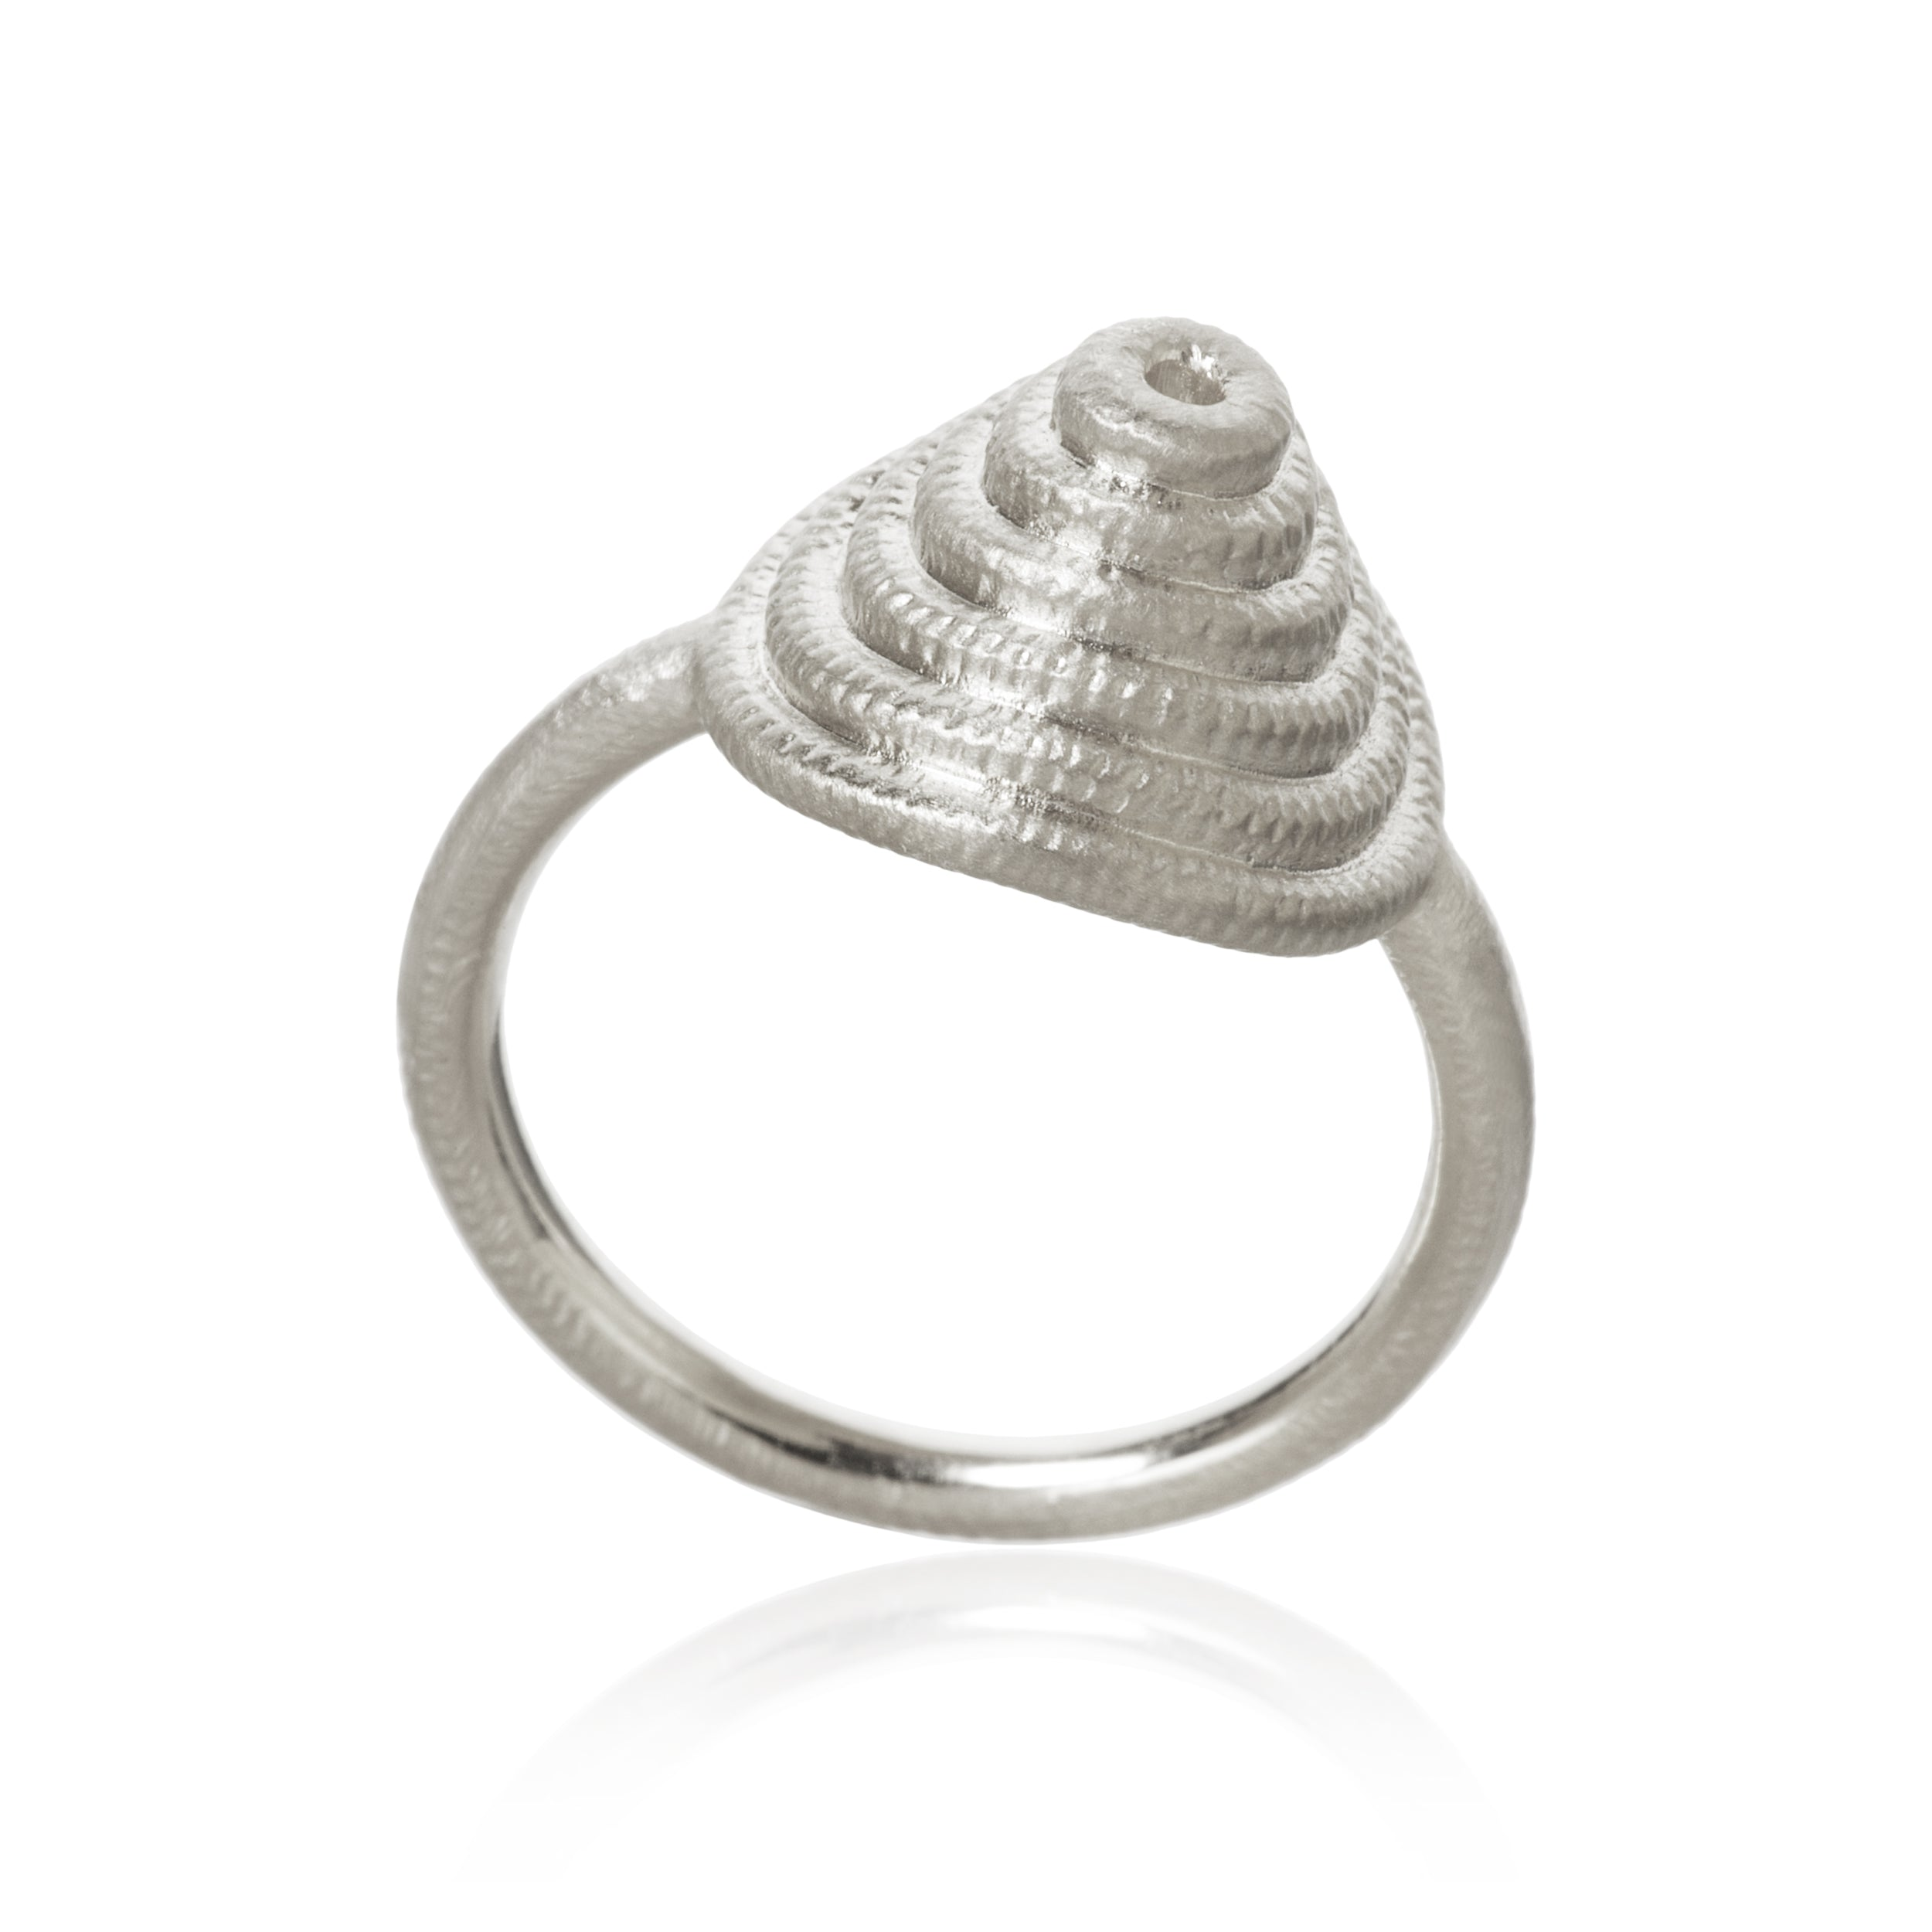 Thera Twist ring.